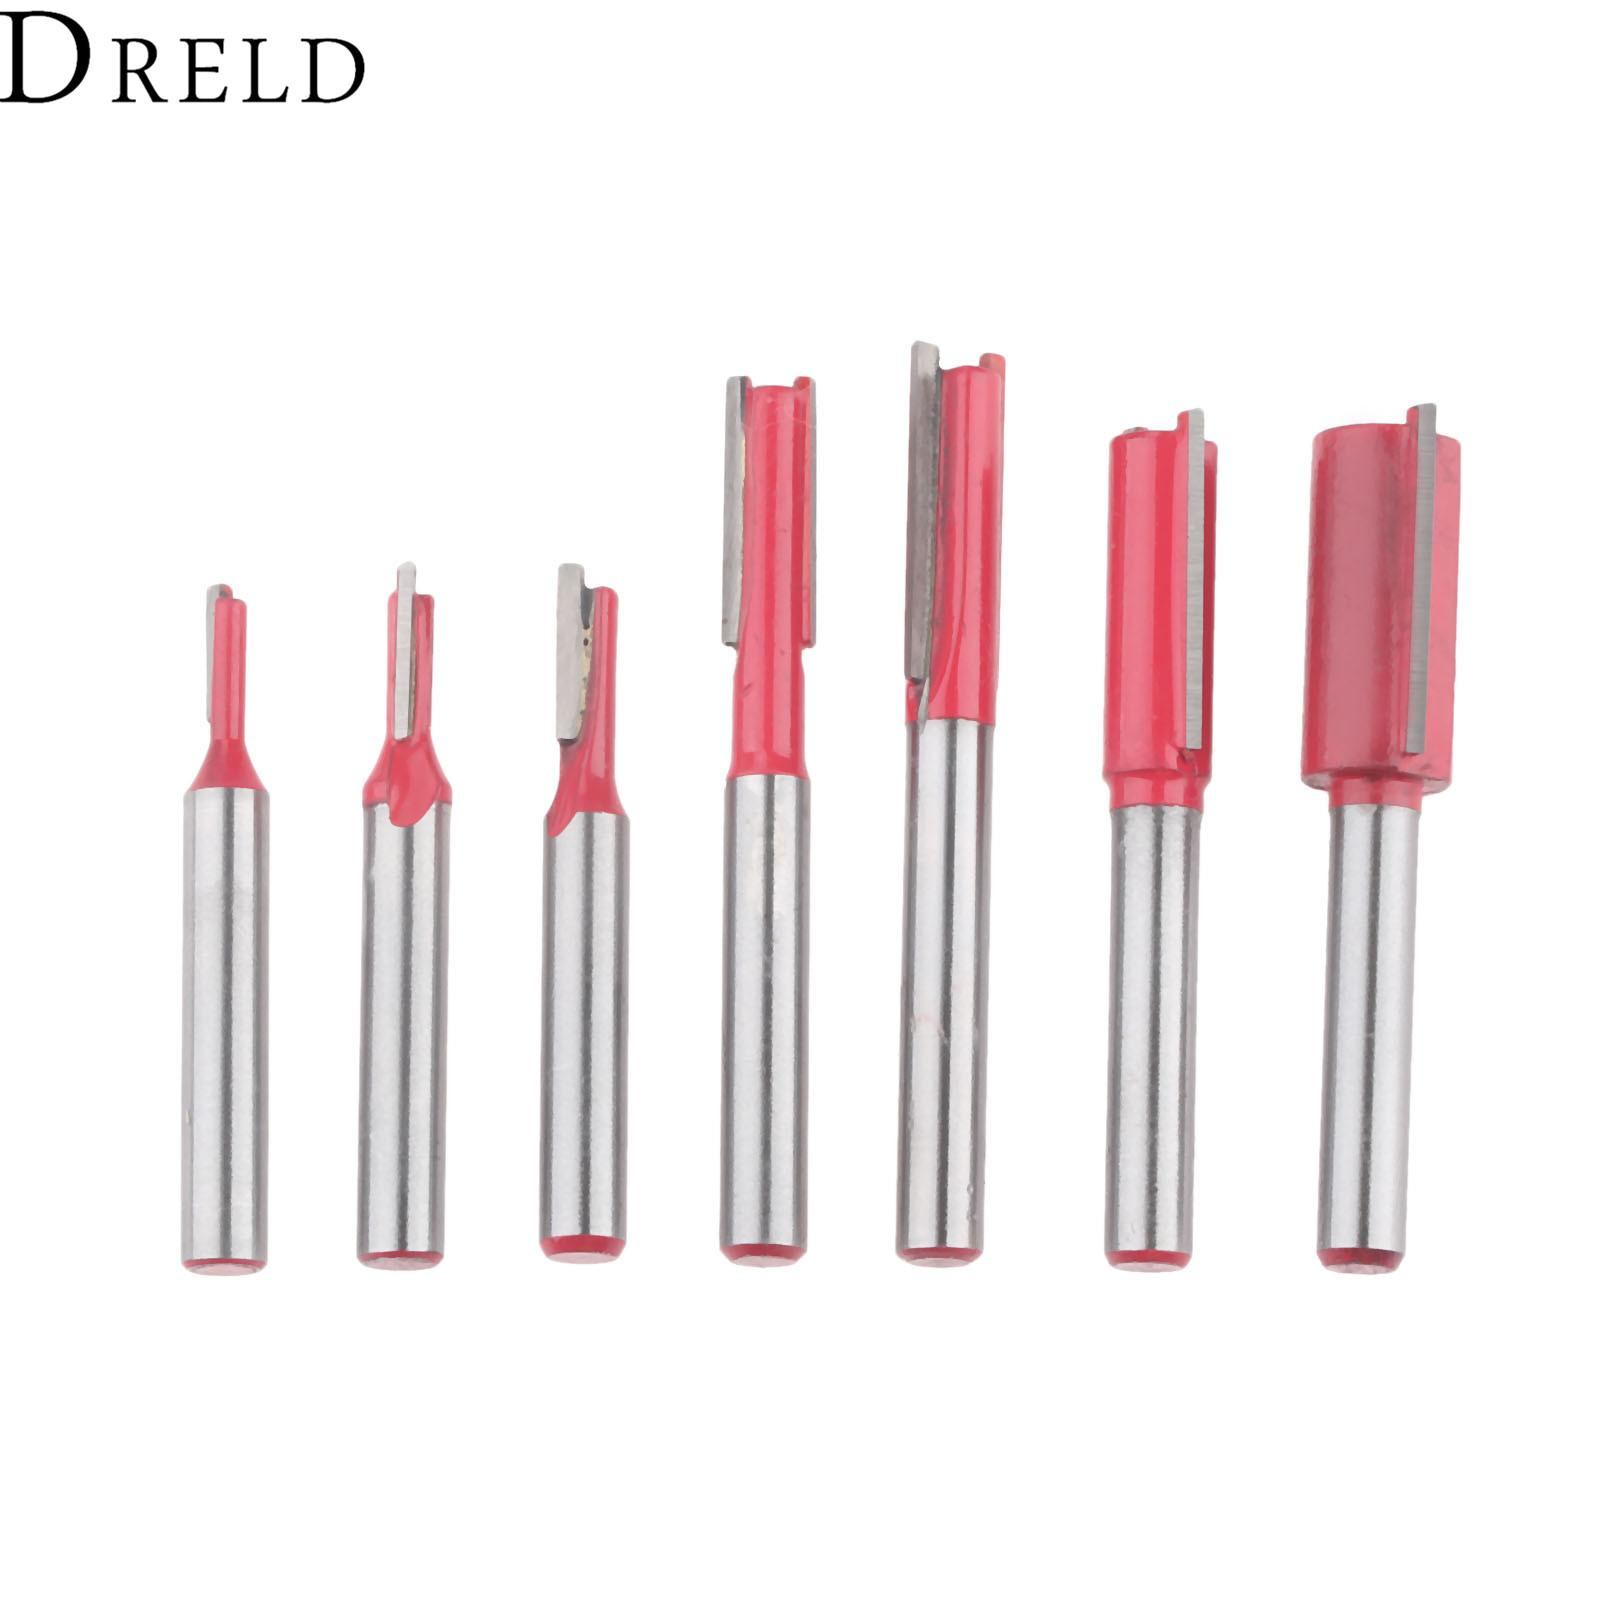 heap Milling Cutter DRELD 1pc Woodworking Tools 1/4 Inch Shank Double Flute Blade Straight Router Bit Carving Woodworking Trimming Millin...